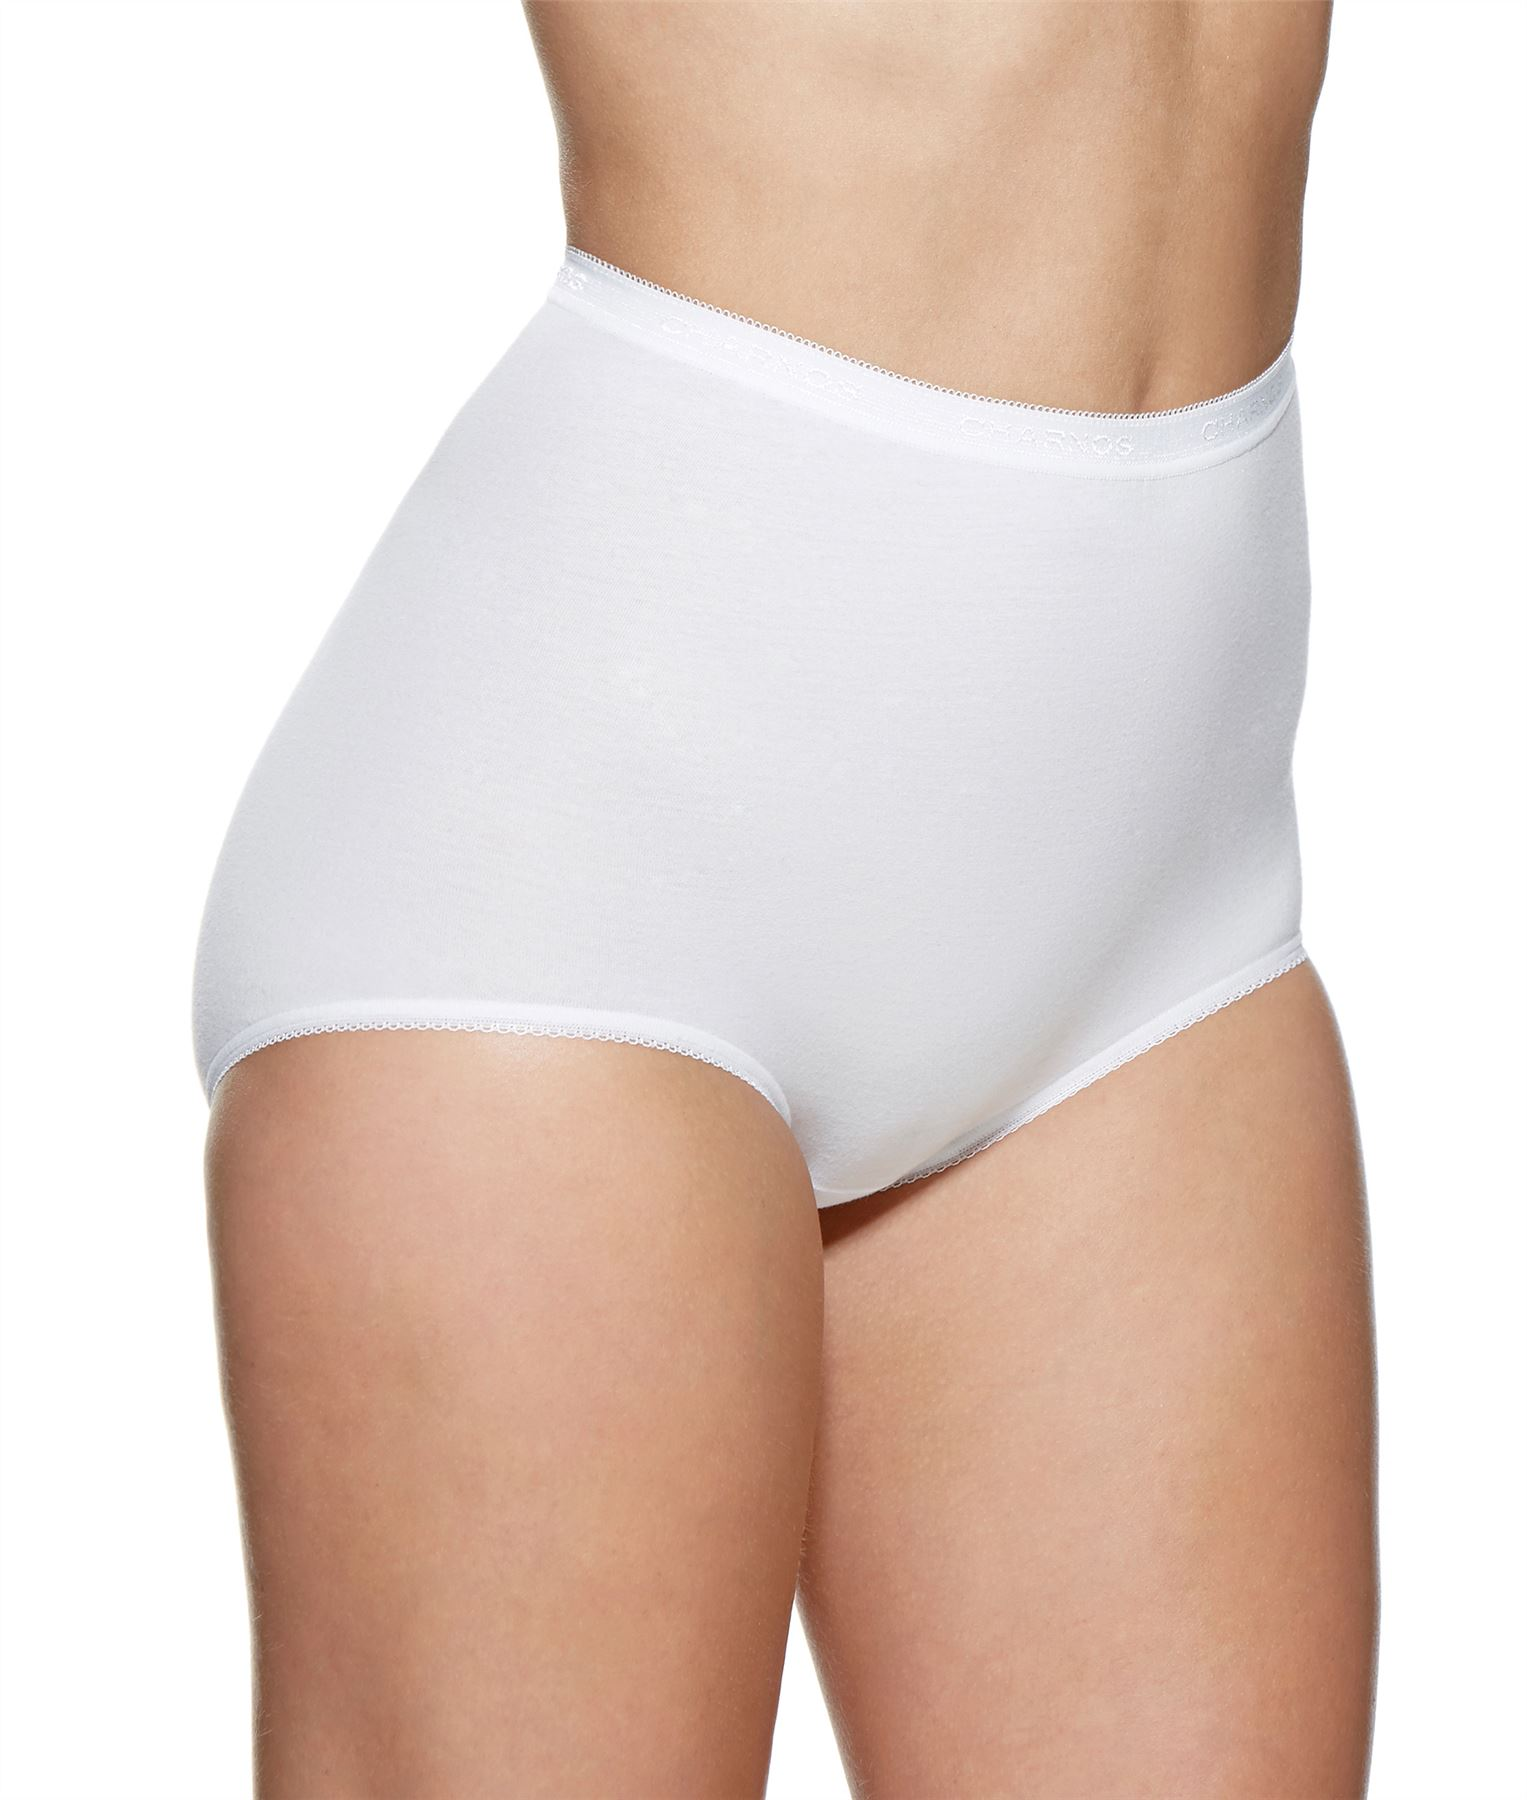 Womens-Charnos-2-pack-Cotton-Rich-Maxi-Brief-38910-Black-or-White